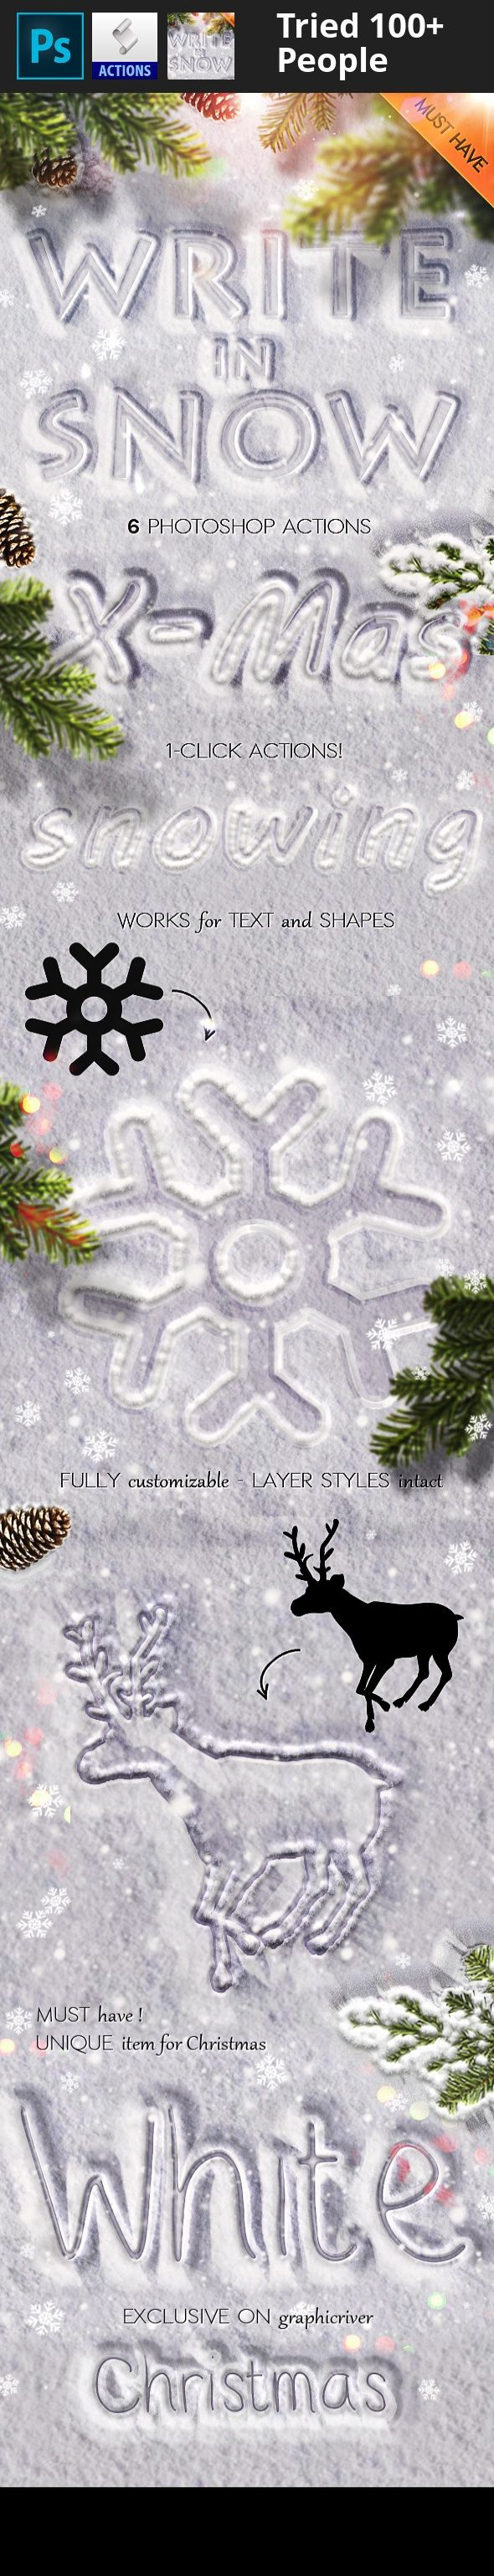 """christmas snow text, Christmas text effect, create snow text, falling snow effect, falling snow photoshop, snow christmas text, snow effect, snow photoshop, snow photoshop style, snow text, snow typography, snow writing, snow writing photoshop, white christmas, write in snow, write in snow photoshop       This set contains 6 Photoshop actions plus a bonus action with styles intact that will allow you to create realistic """"snow writing"""" or """"write in snow"""" effects out..."""